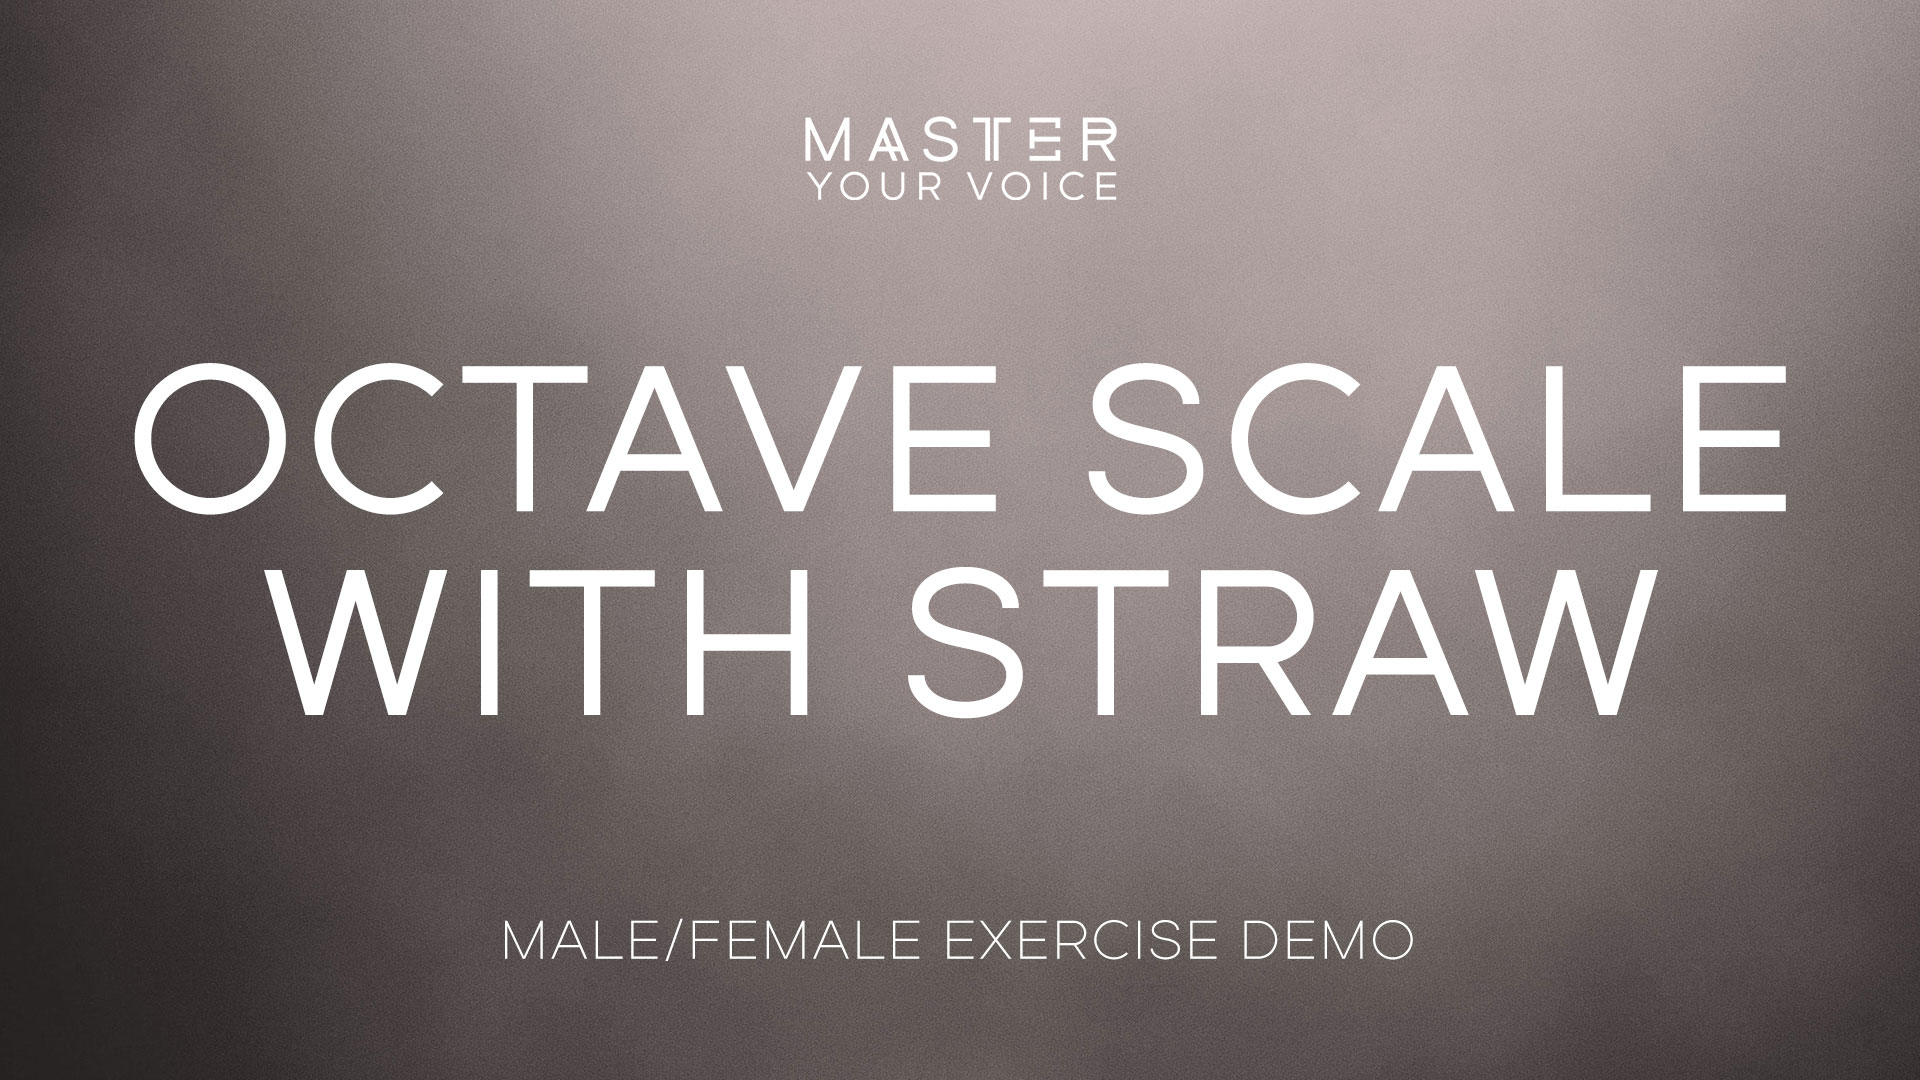 Octave Scale with Straw Exercise Demo